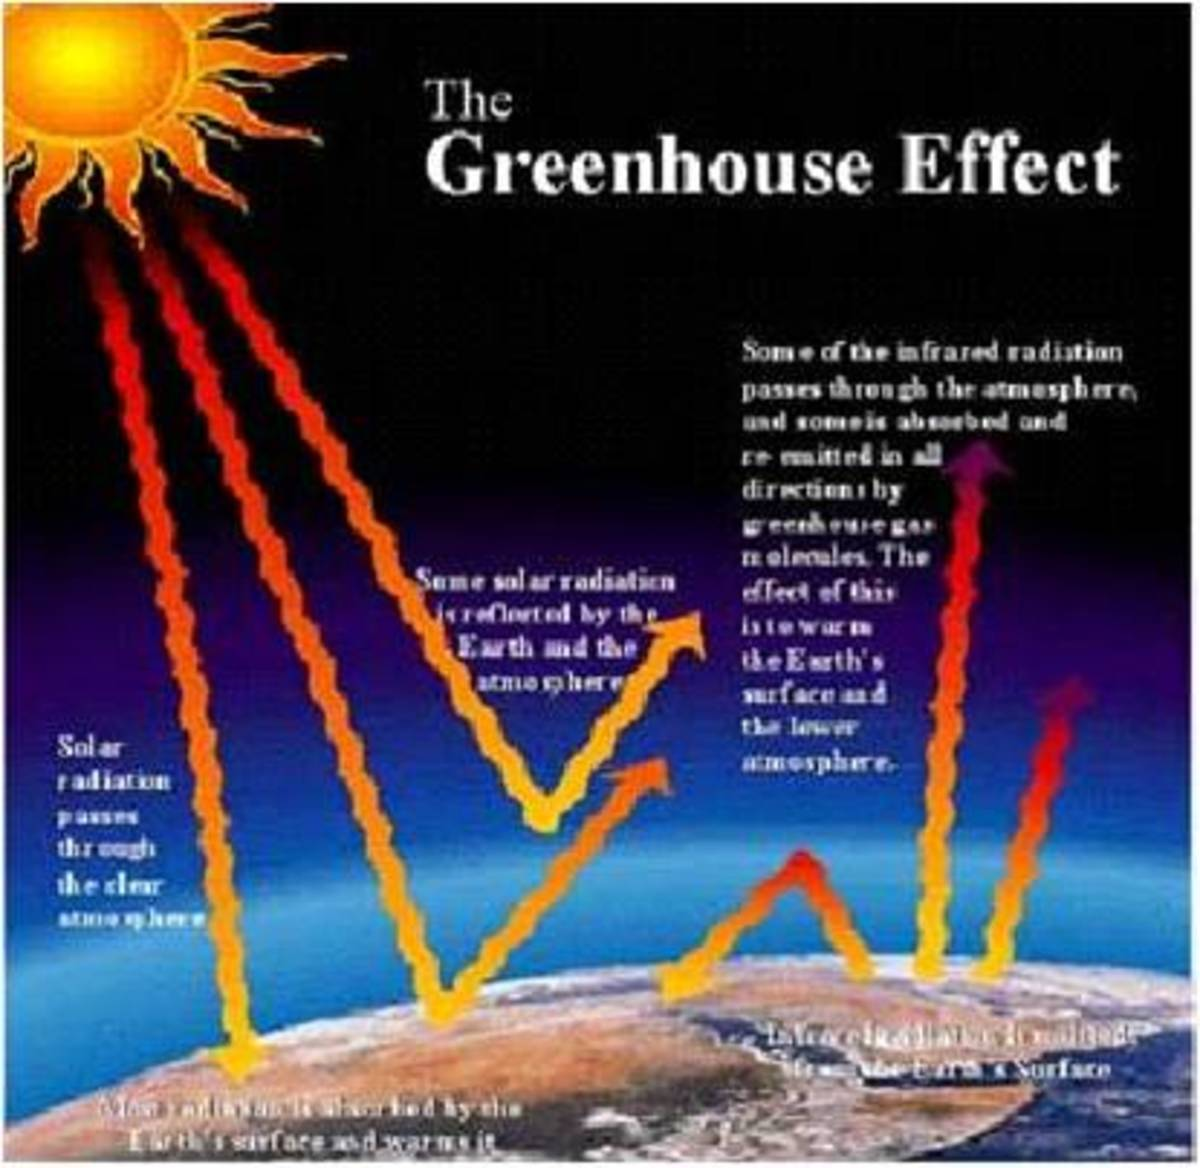 Refers to the phenomenon where certain gases in the lower atmosphere absorb the heat radiated by the earth, thereby preventing the heat from escaping to outer space.